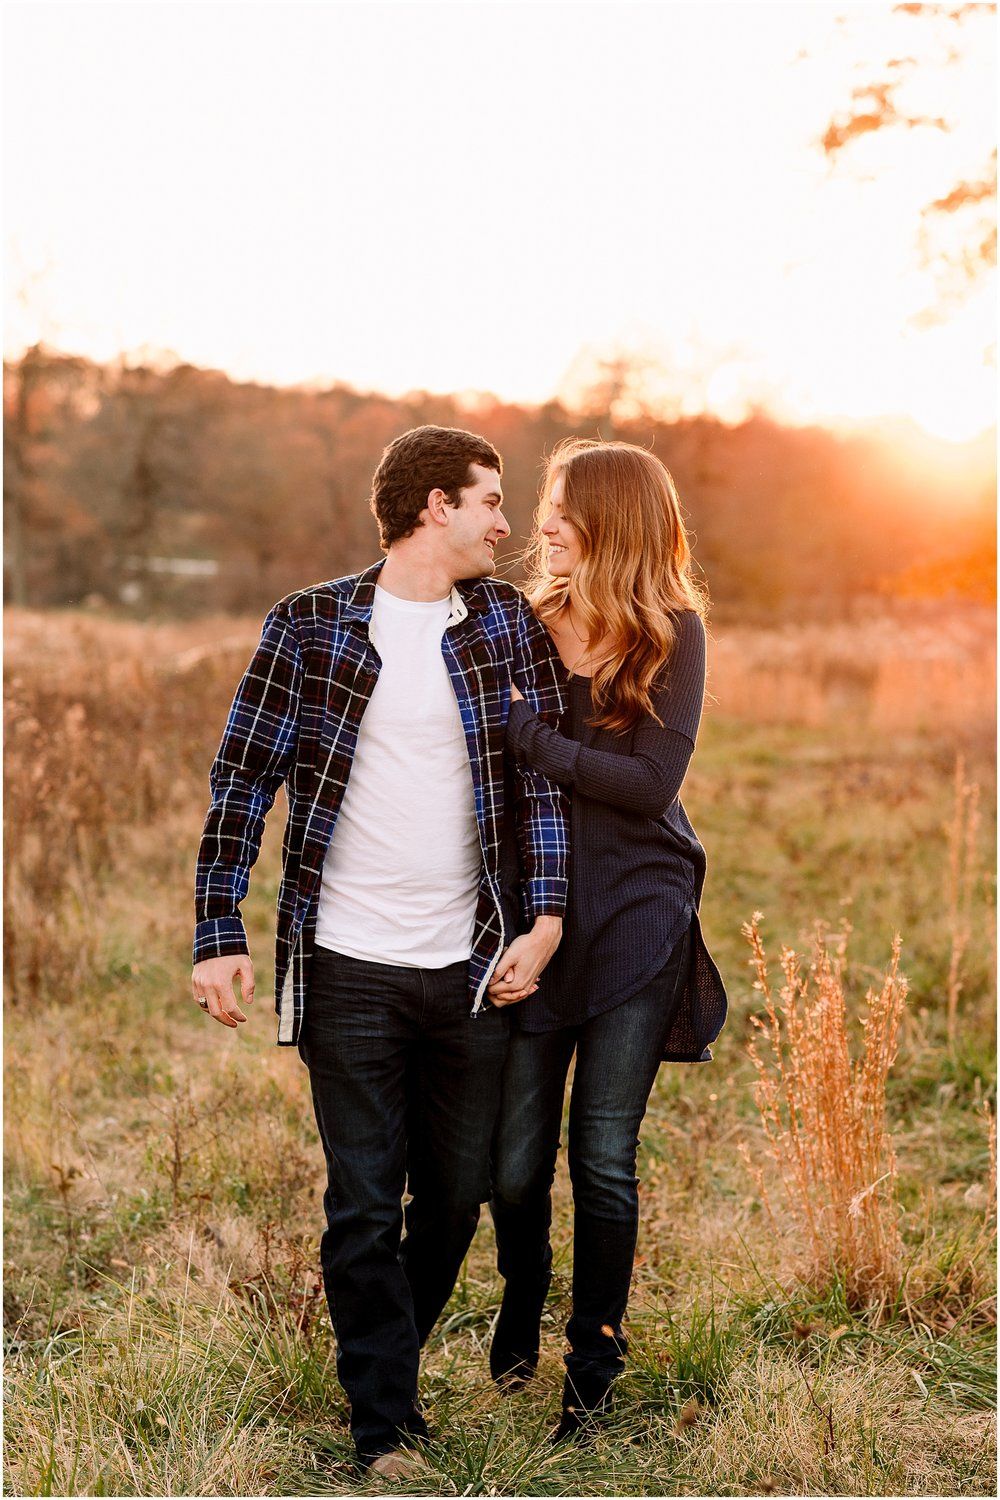 Hannah Leigh Photography Ellicott City MD Engagement Session_6945.jpg